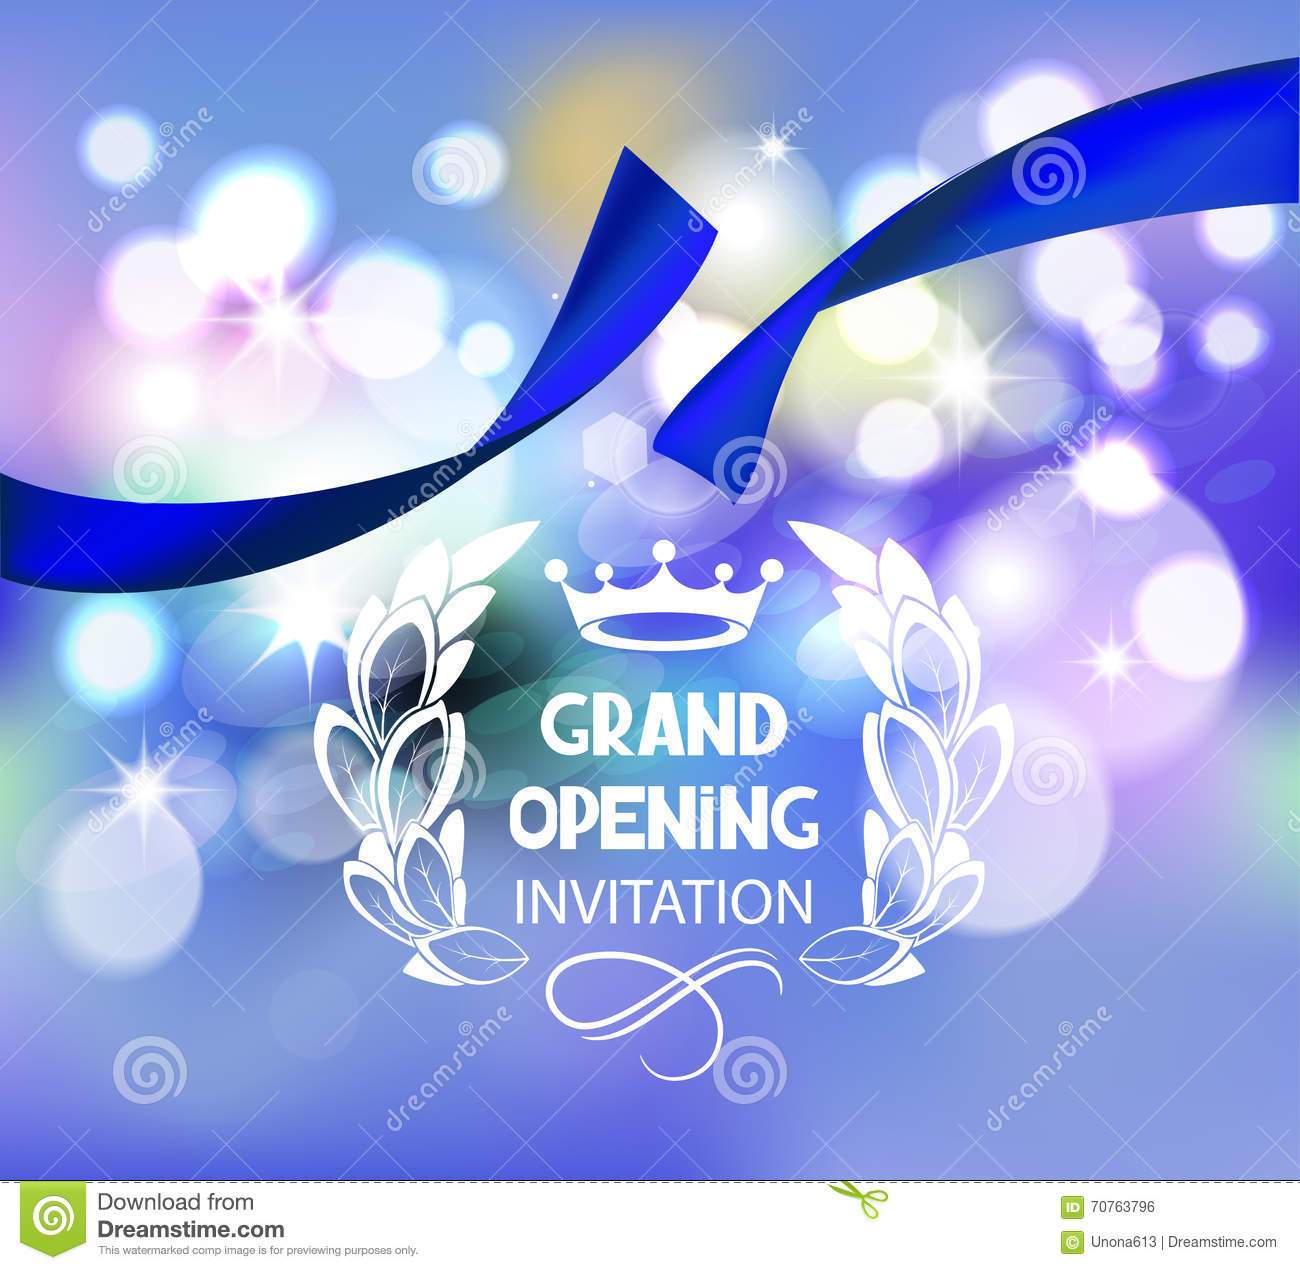 Grand opening invitation card with abstract ribbon vector